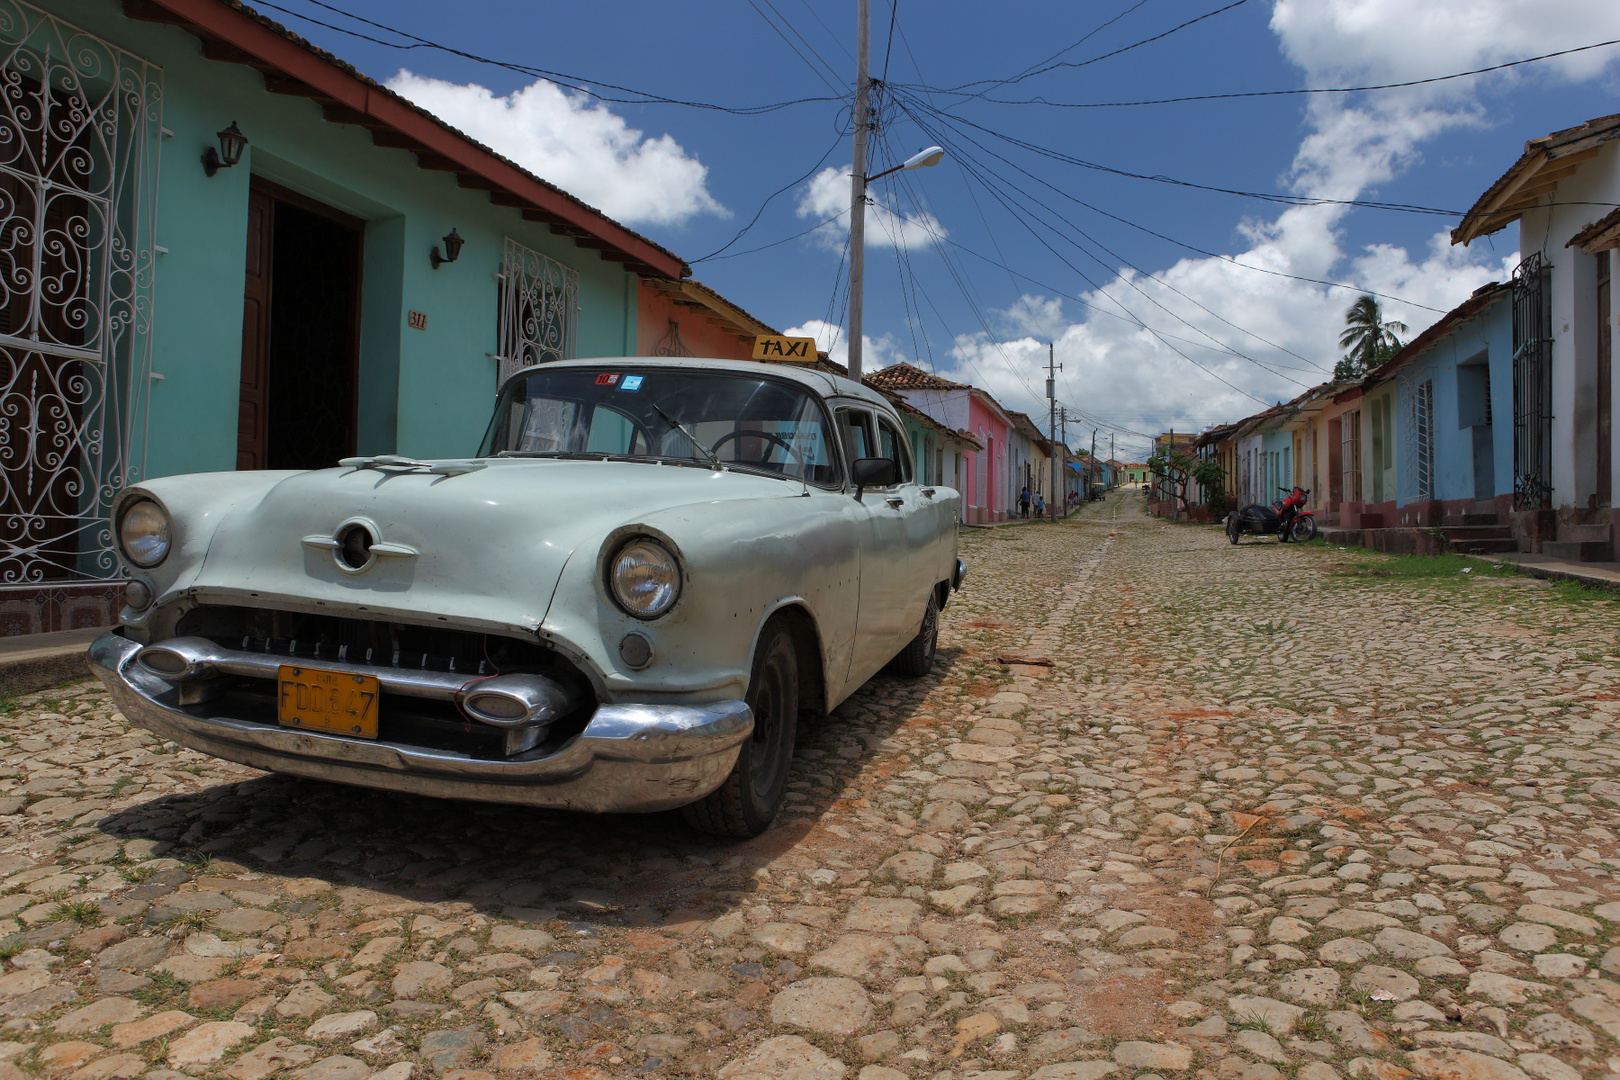 old car in old Trinidad